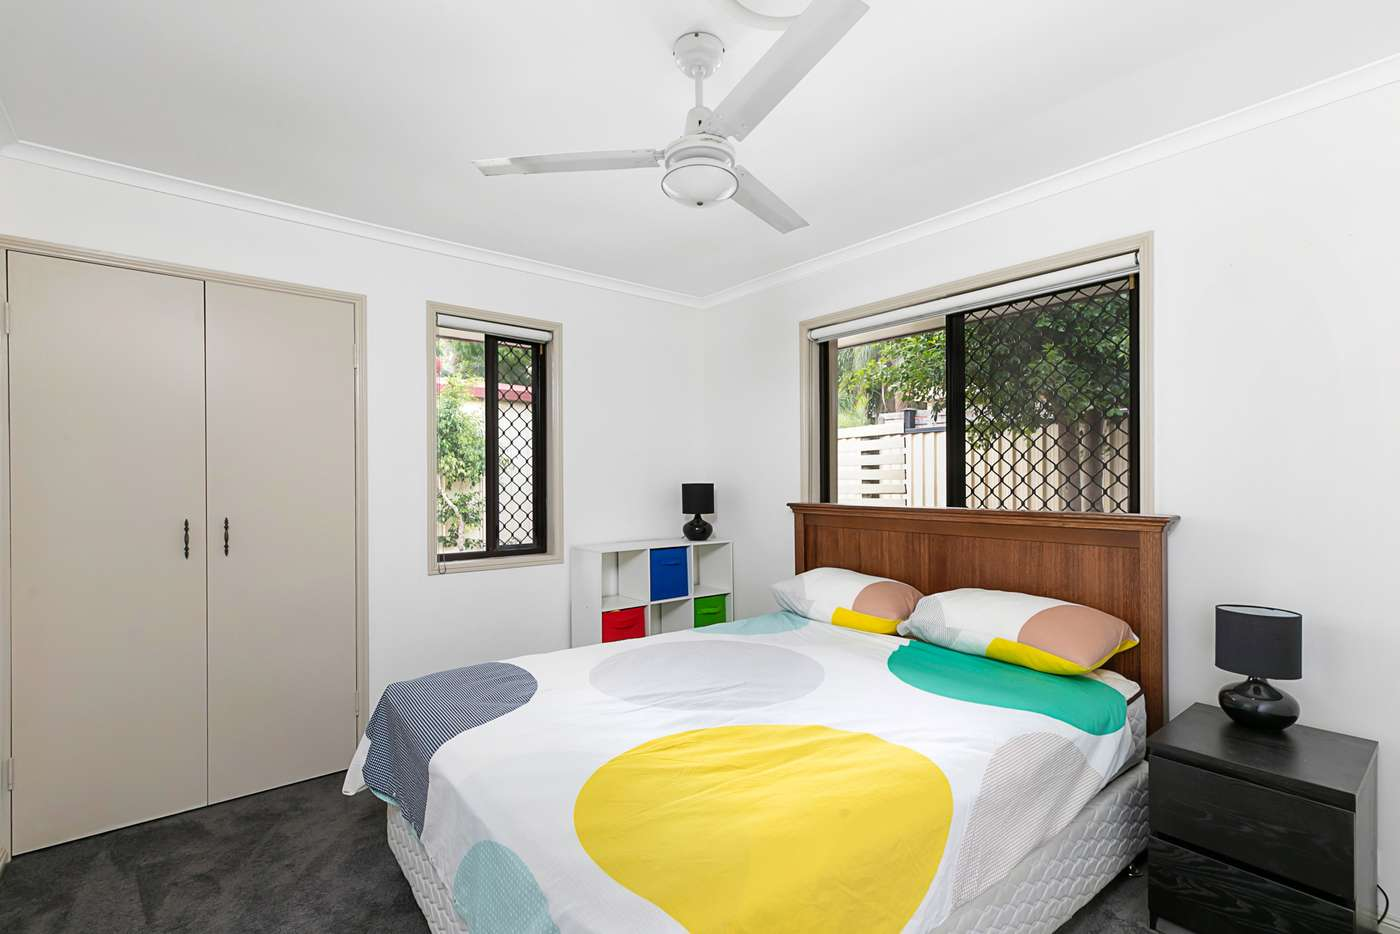 Sixth view of Homely house listing, 6 Randwick Street, Capalaba QLD 4157